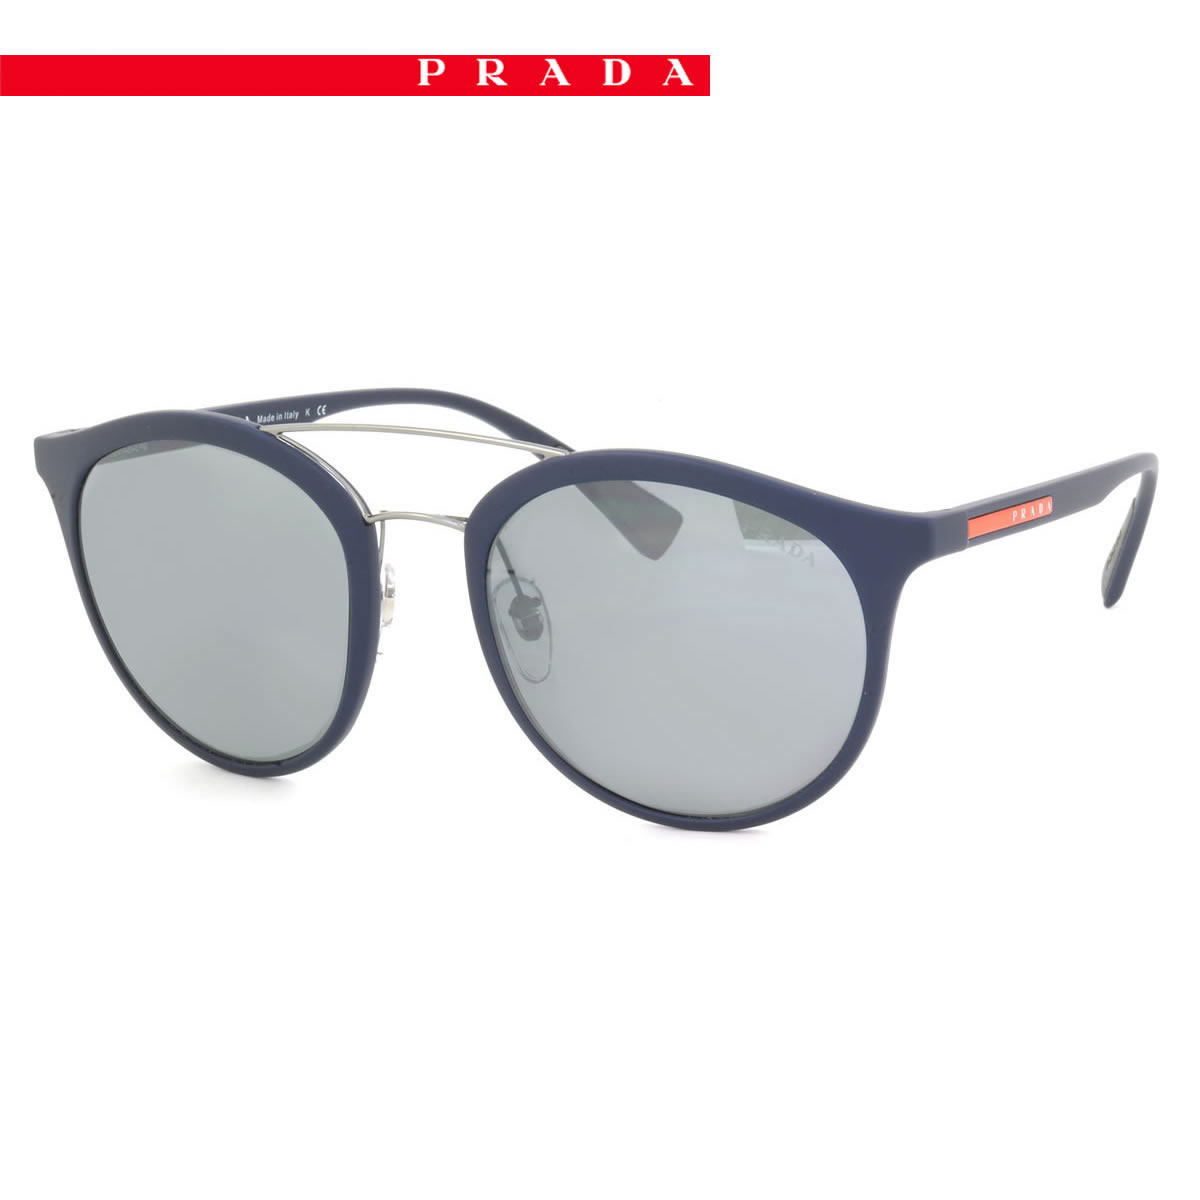 0356a56e245e (PRADA SPORT) sunglasses PS04RS TFY7W1 54 size PRADA SPORTS two bridge  rubber frame PRADASPORT men gap Dis